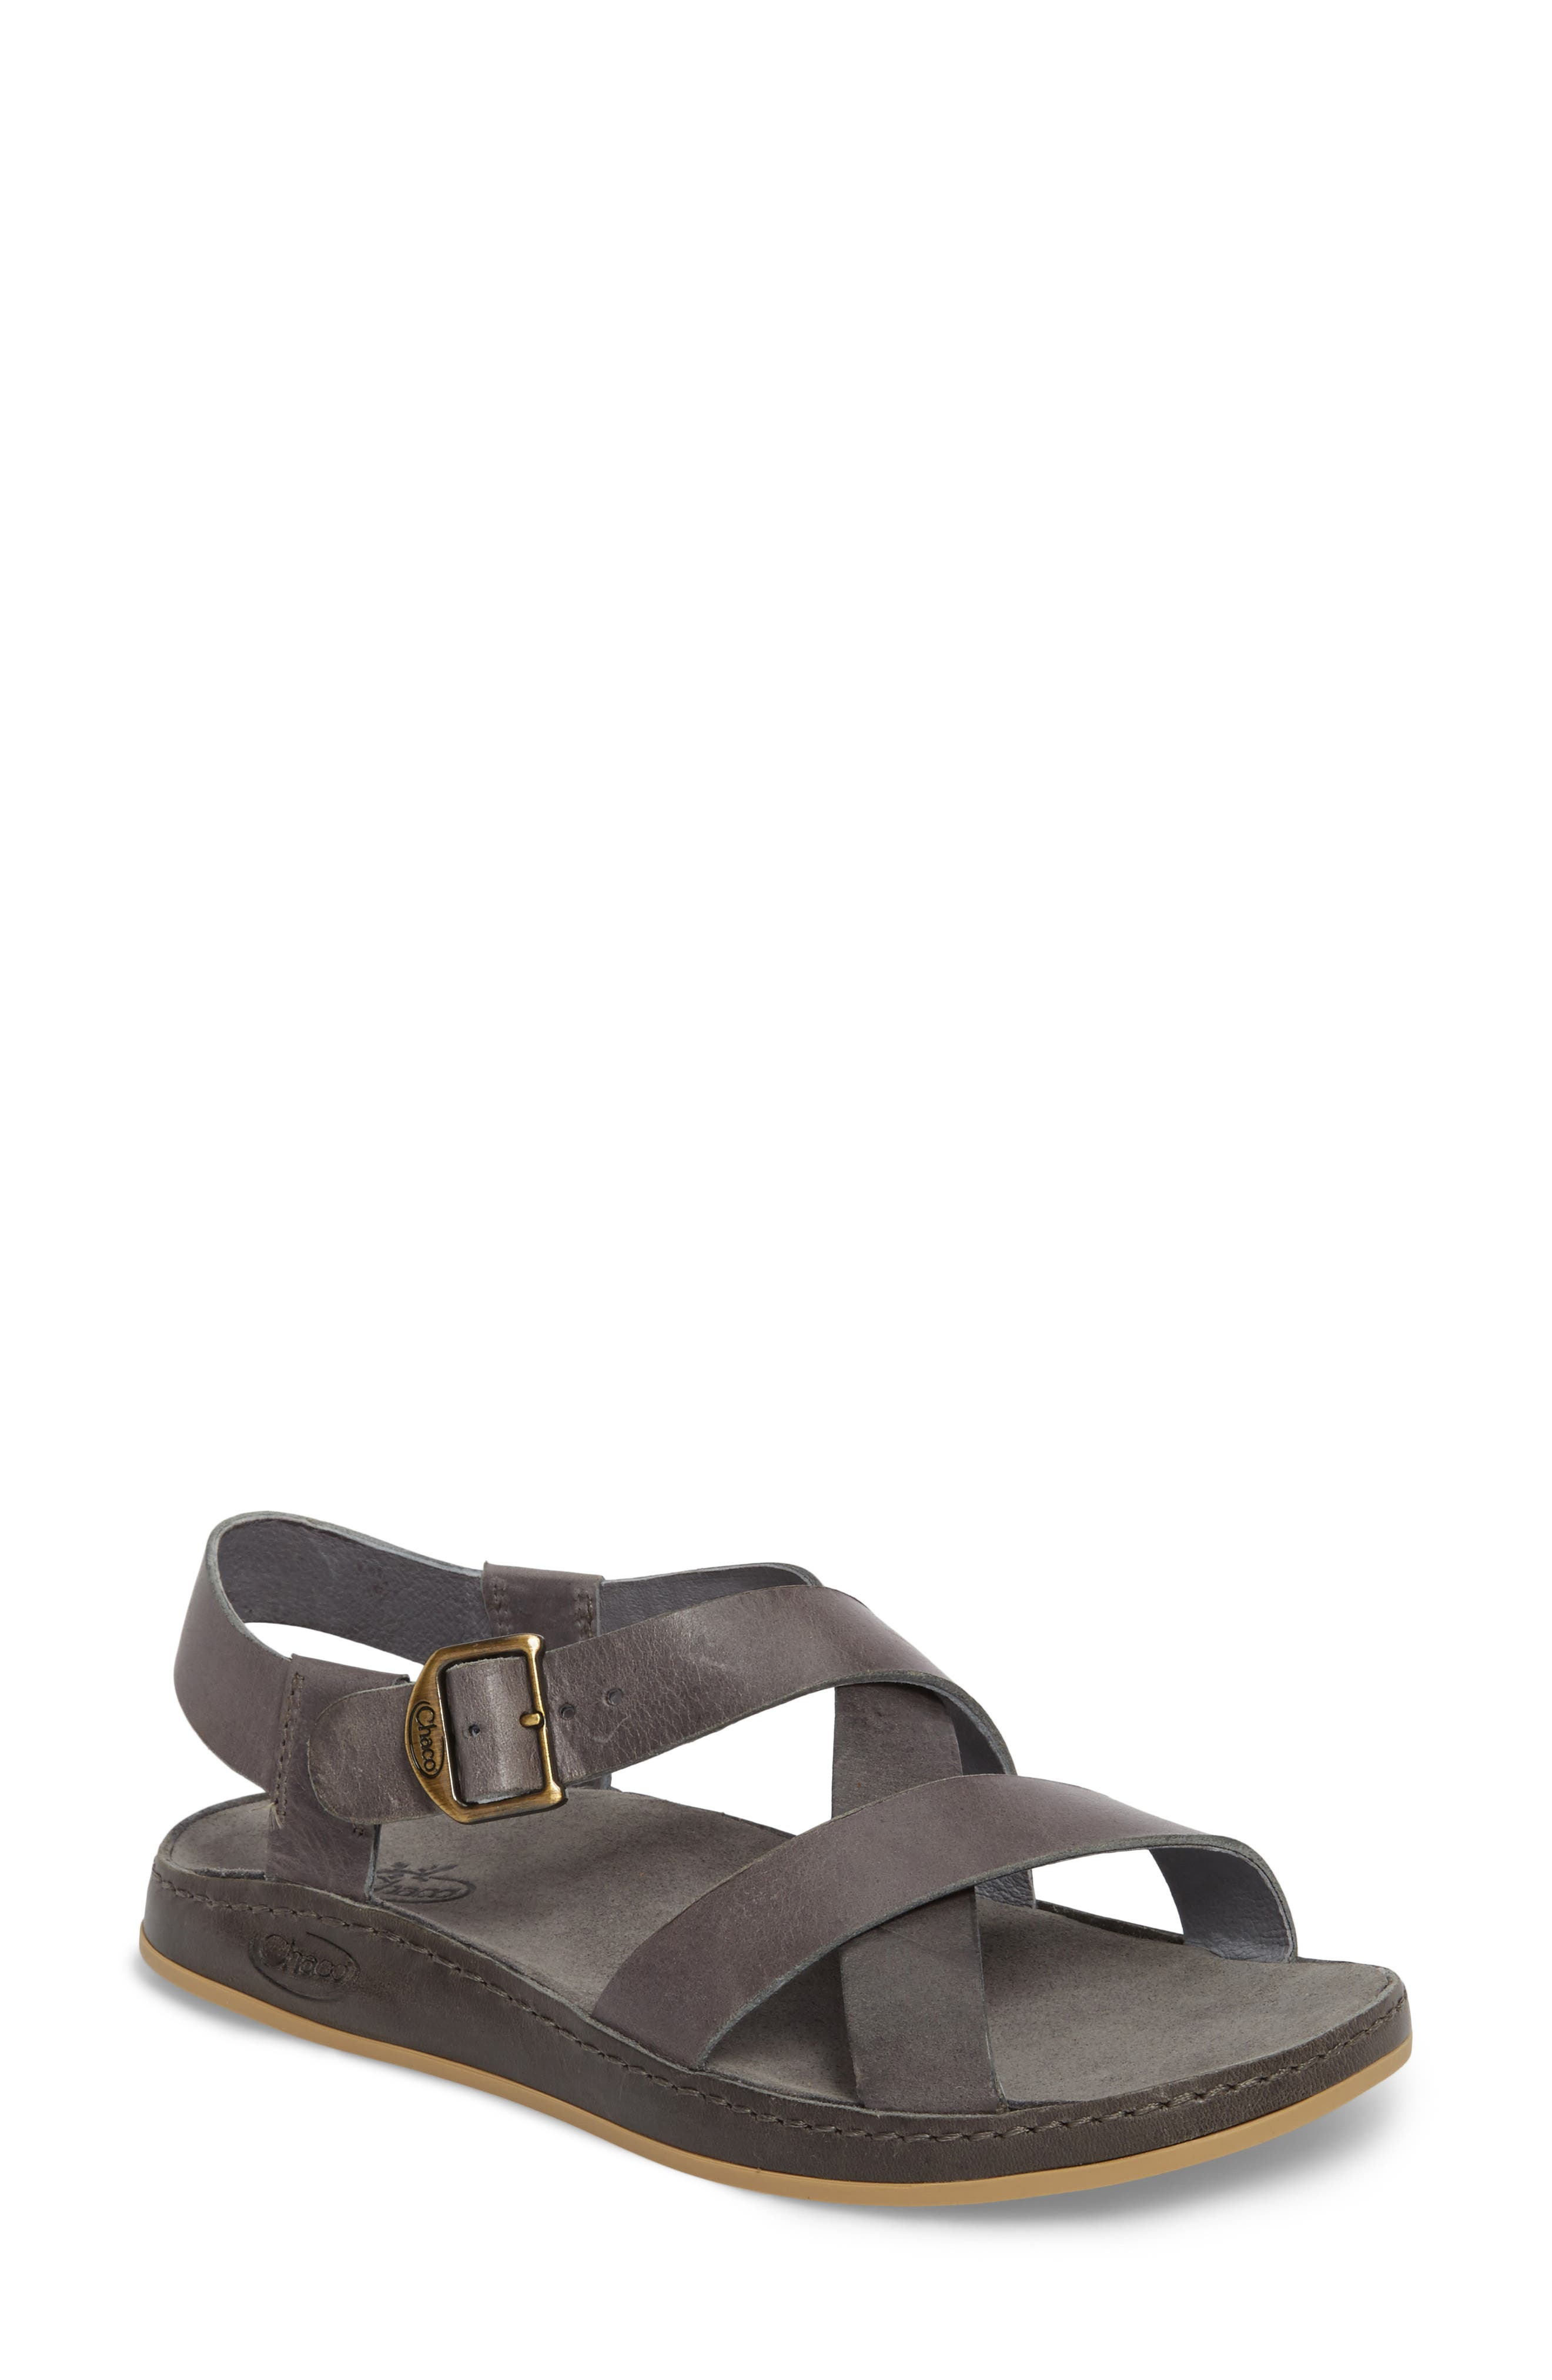 Strappy Sandal,                         Main,                         color, GREY LEATHER